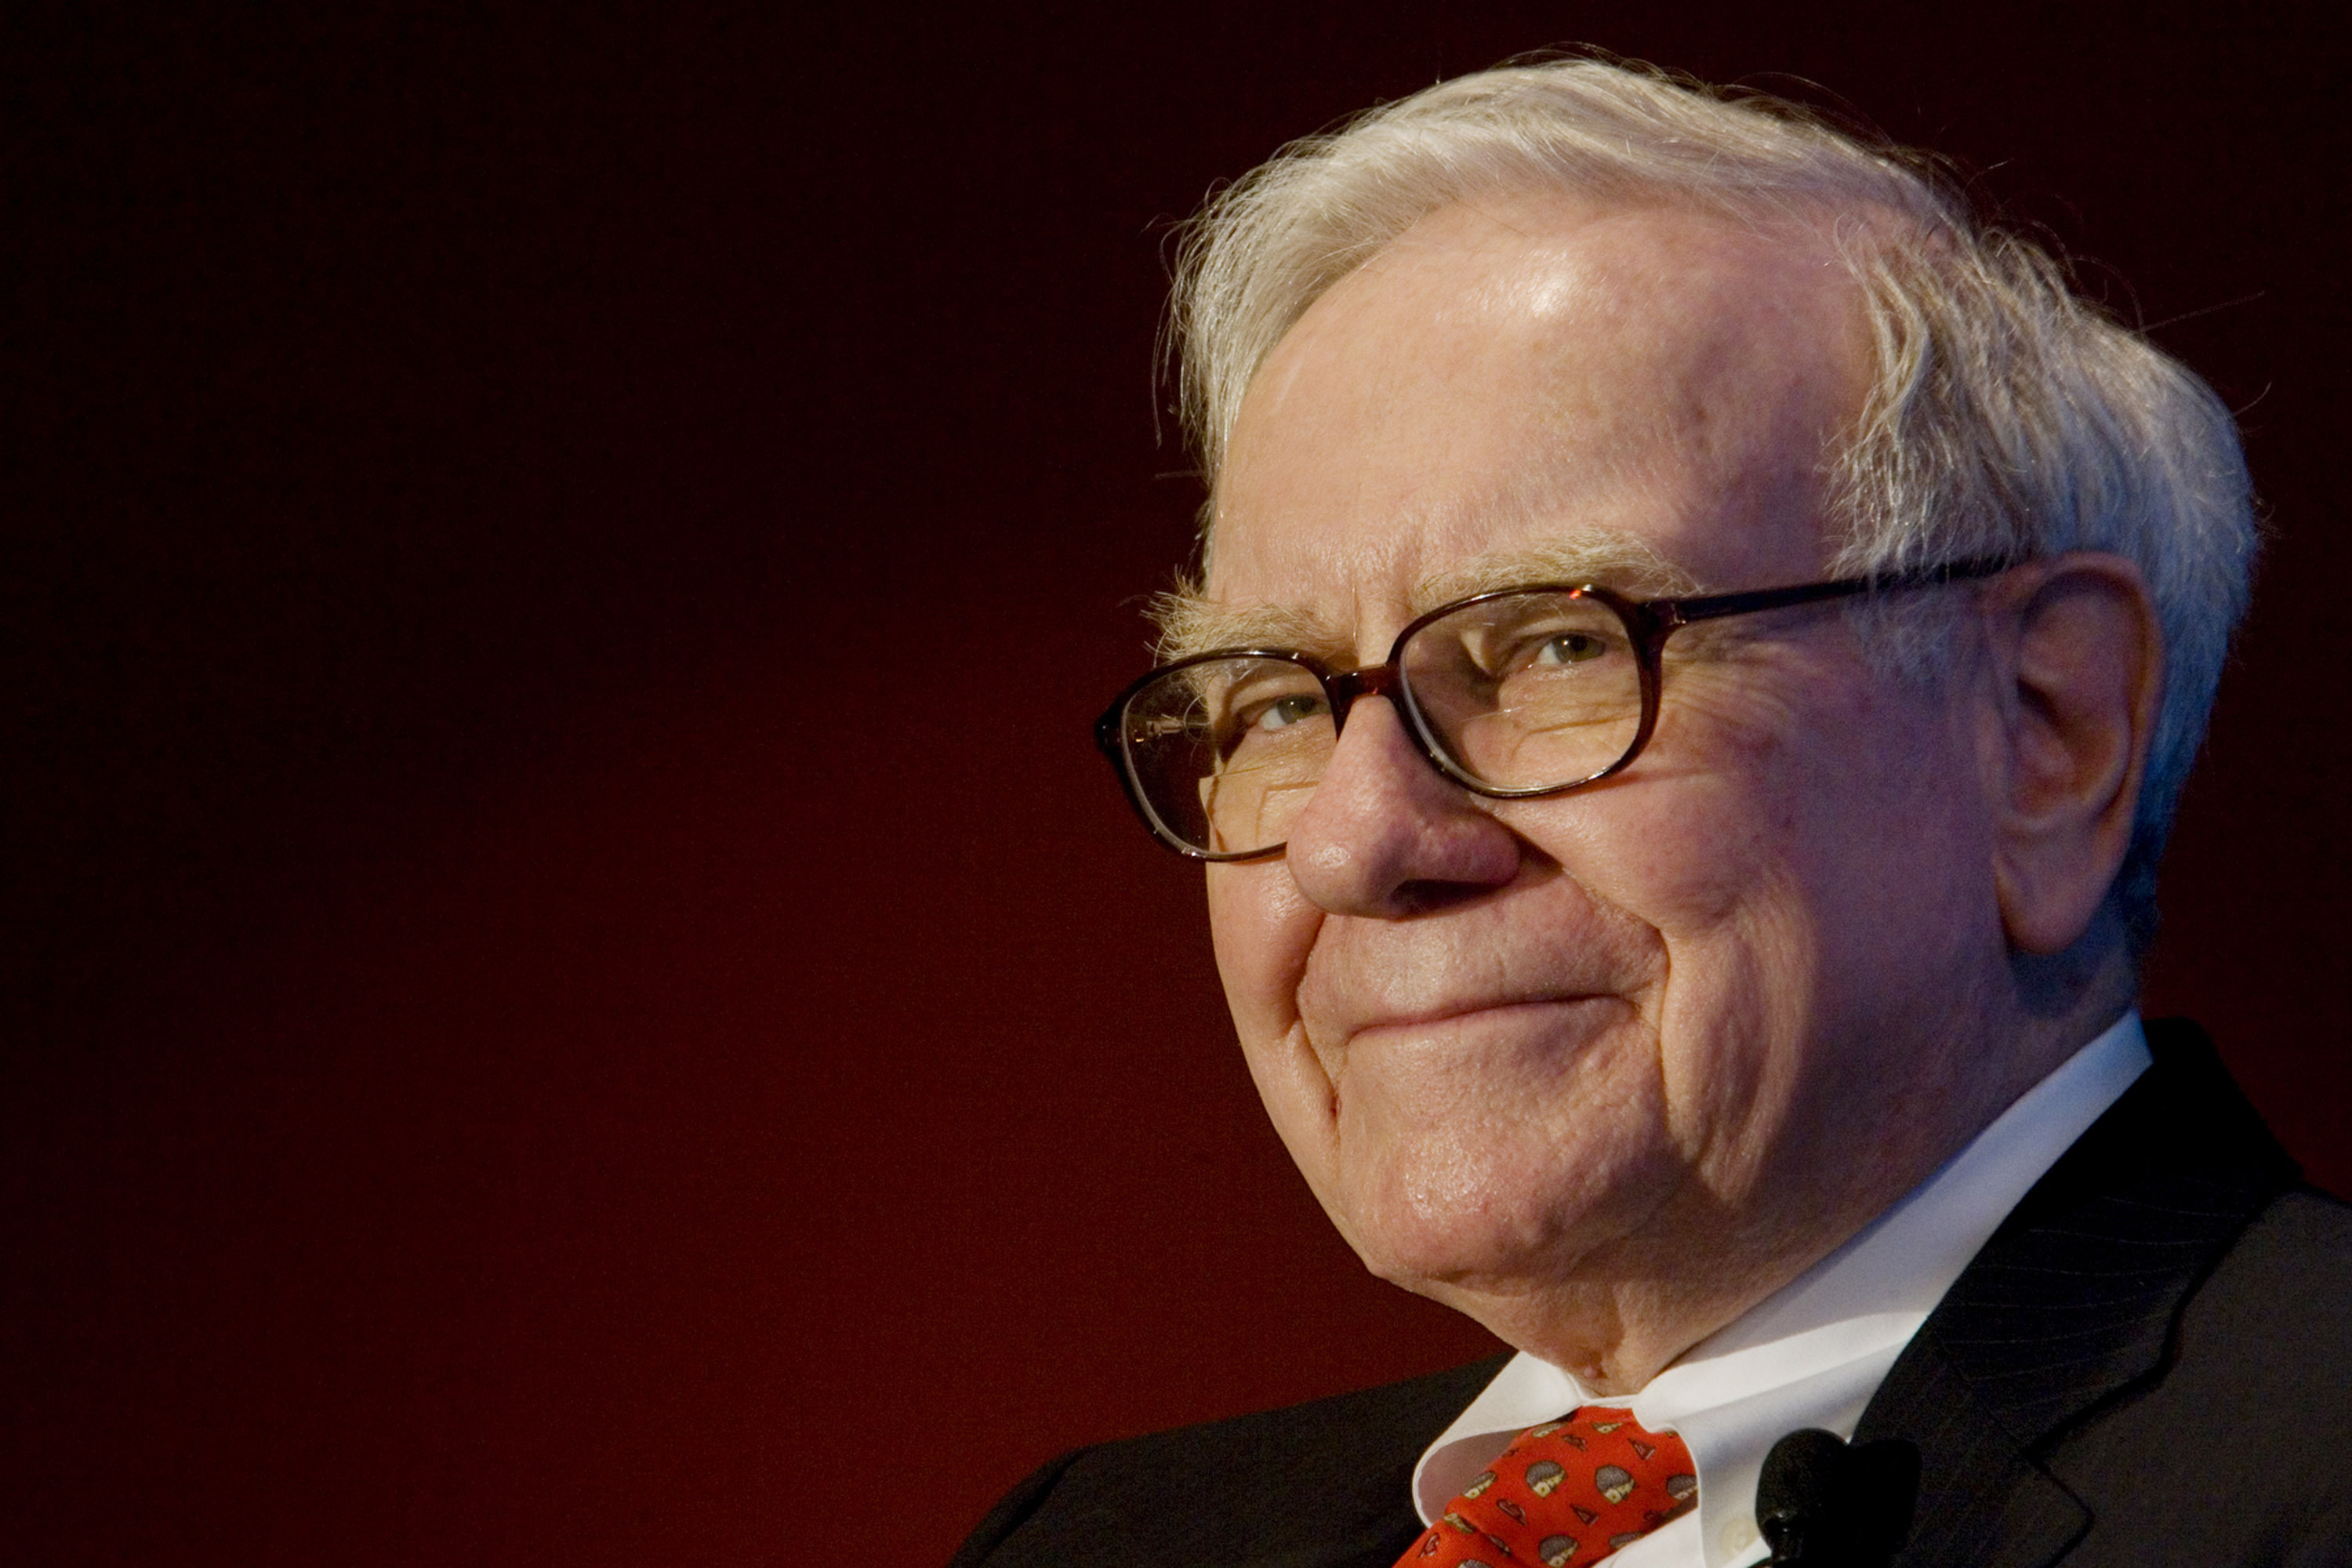 Simplify Life: Warren Buffett's Wisdom In 5/25 List